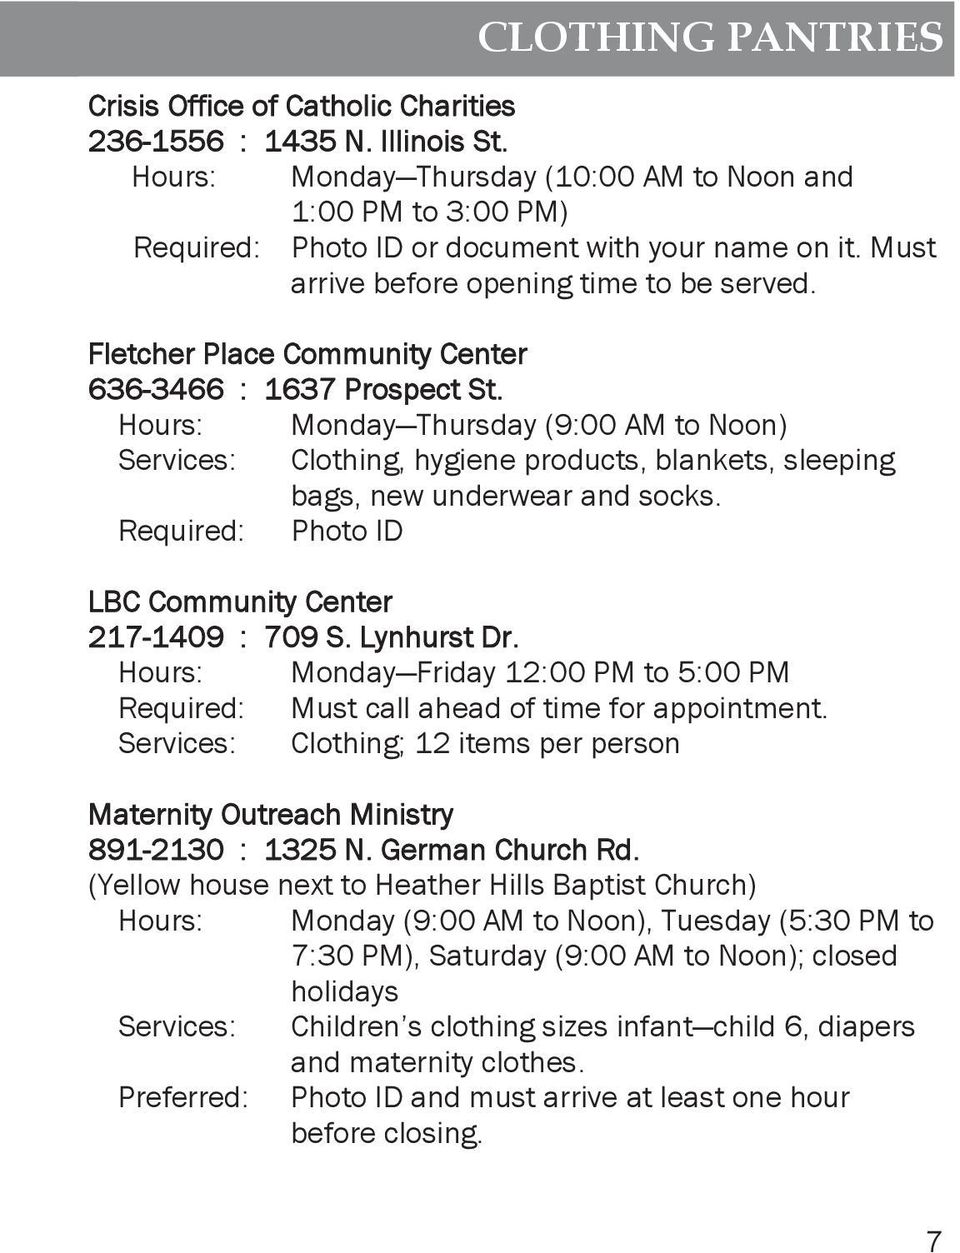 Fletcher Place Community Center 636-3466 : 1637 Prospect St. Hours: Monday Thursday (9:00 AM to Noon) Services: Clothing, hygiene products, blankets, sleeping bags, new underwear and socks.